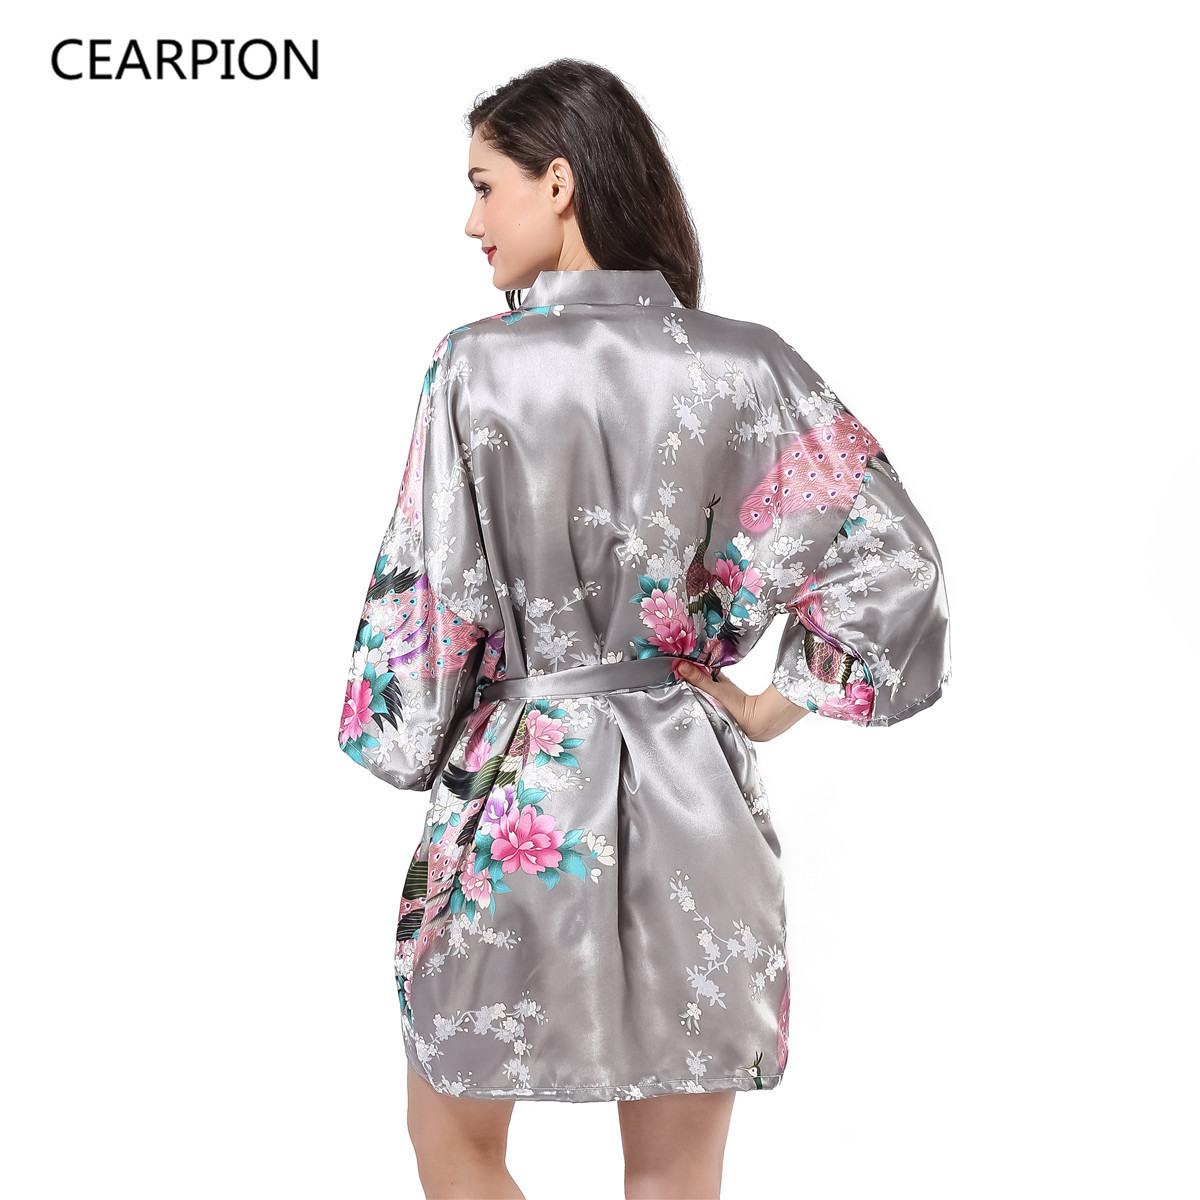 CEARPION Sexy Bathrobe Gown Print Flower Peacock Sleepwear Women Nightwear Satin Kimono Home Clothes Negligee Plus Size S-3XL